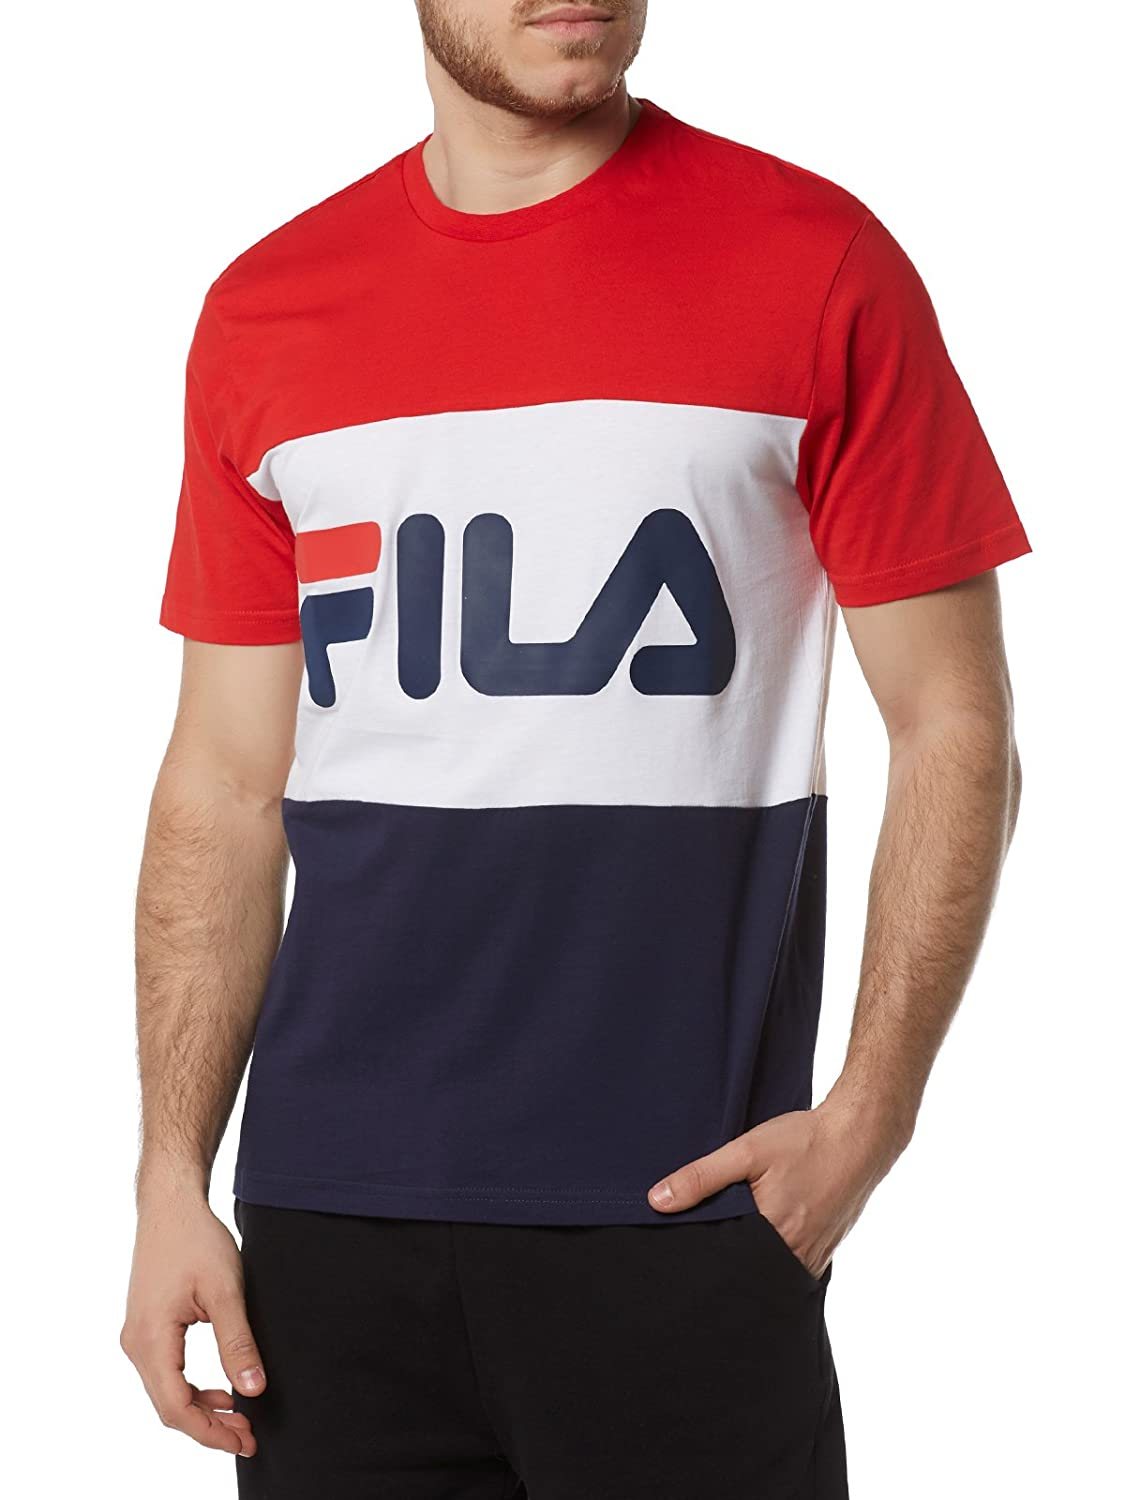 Fila Men T-Shirt Day, Größe:XL, Farbe:Peacoat/High Risk Red/Bright White